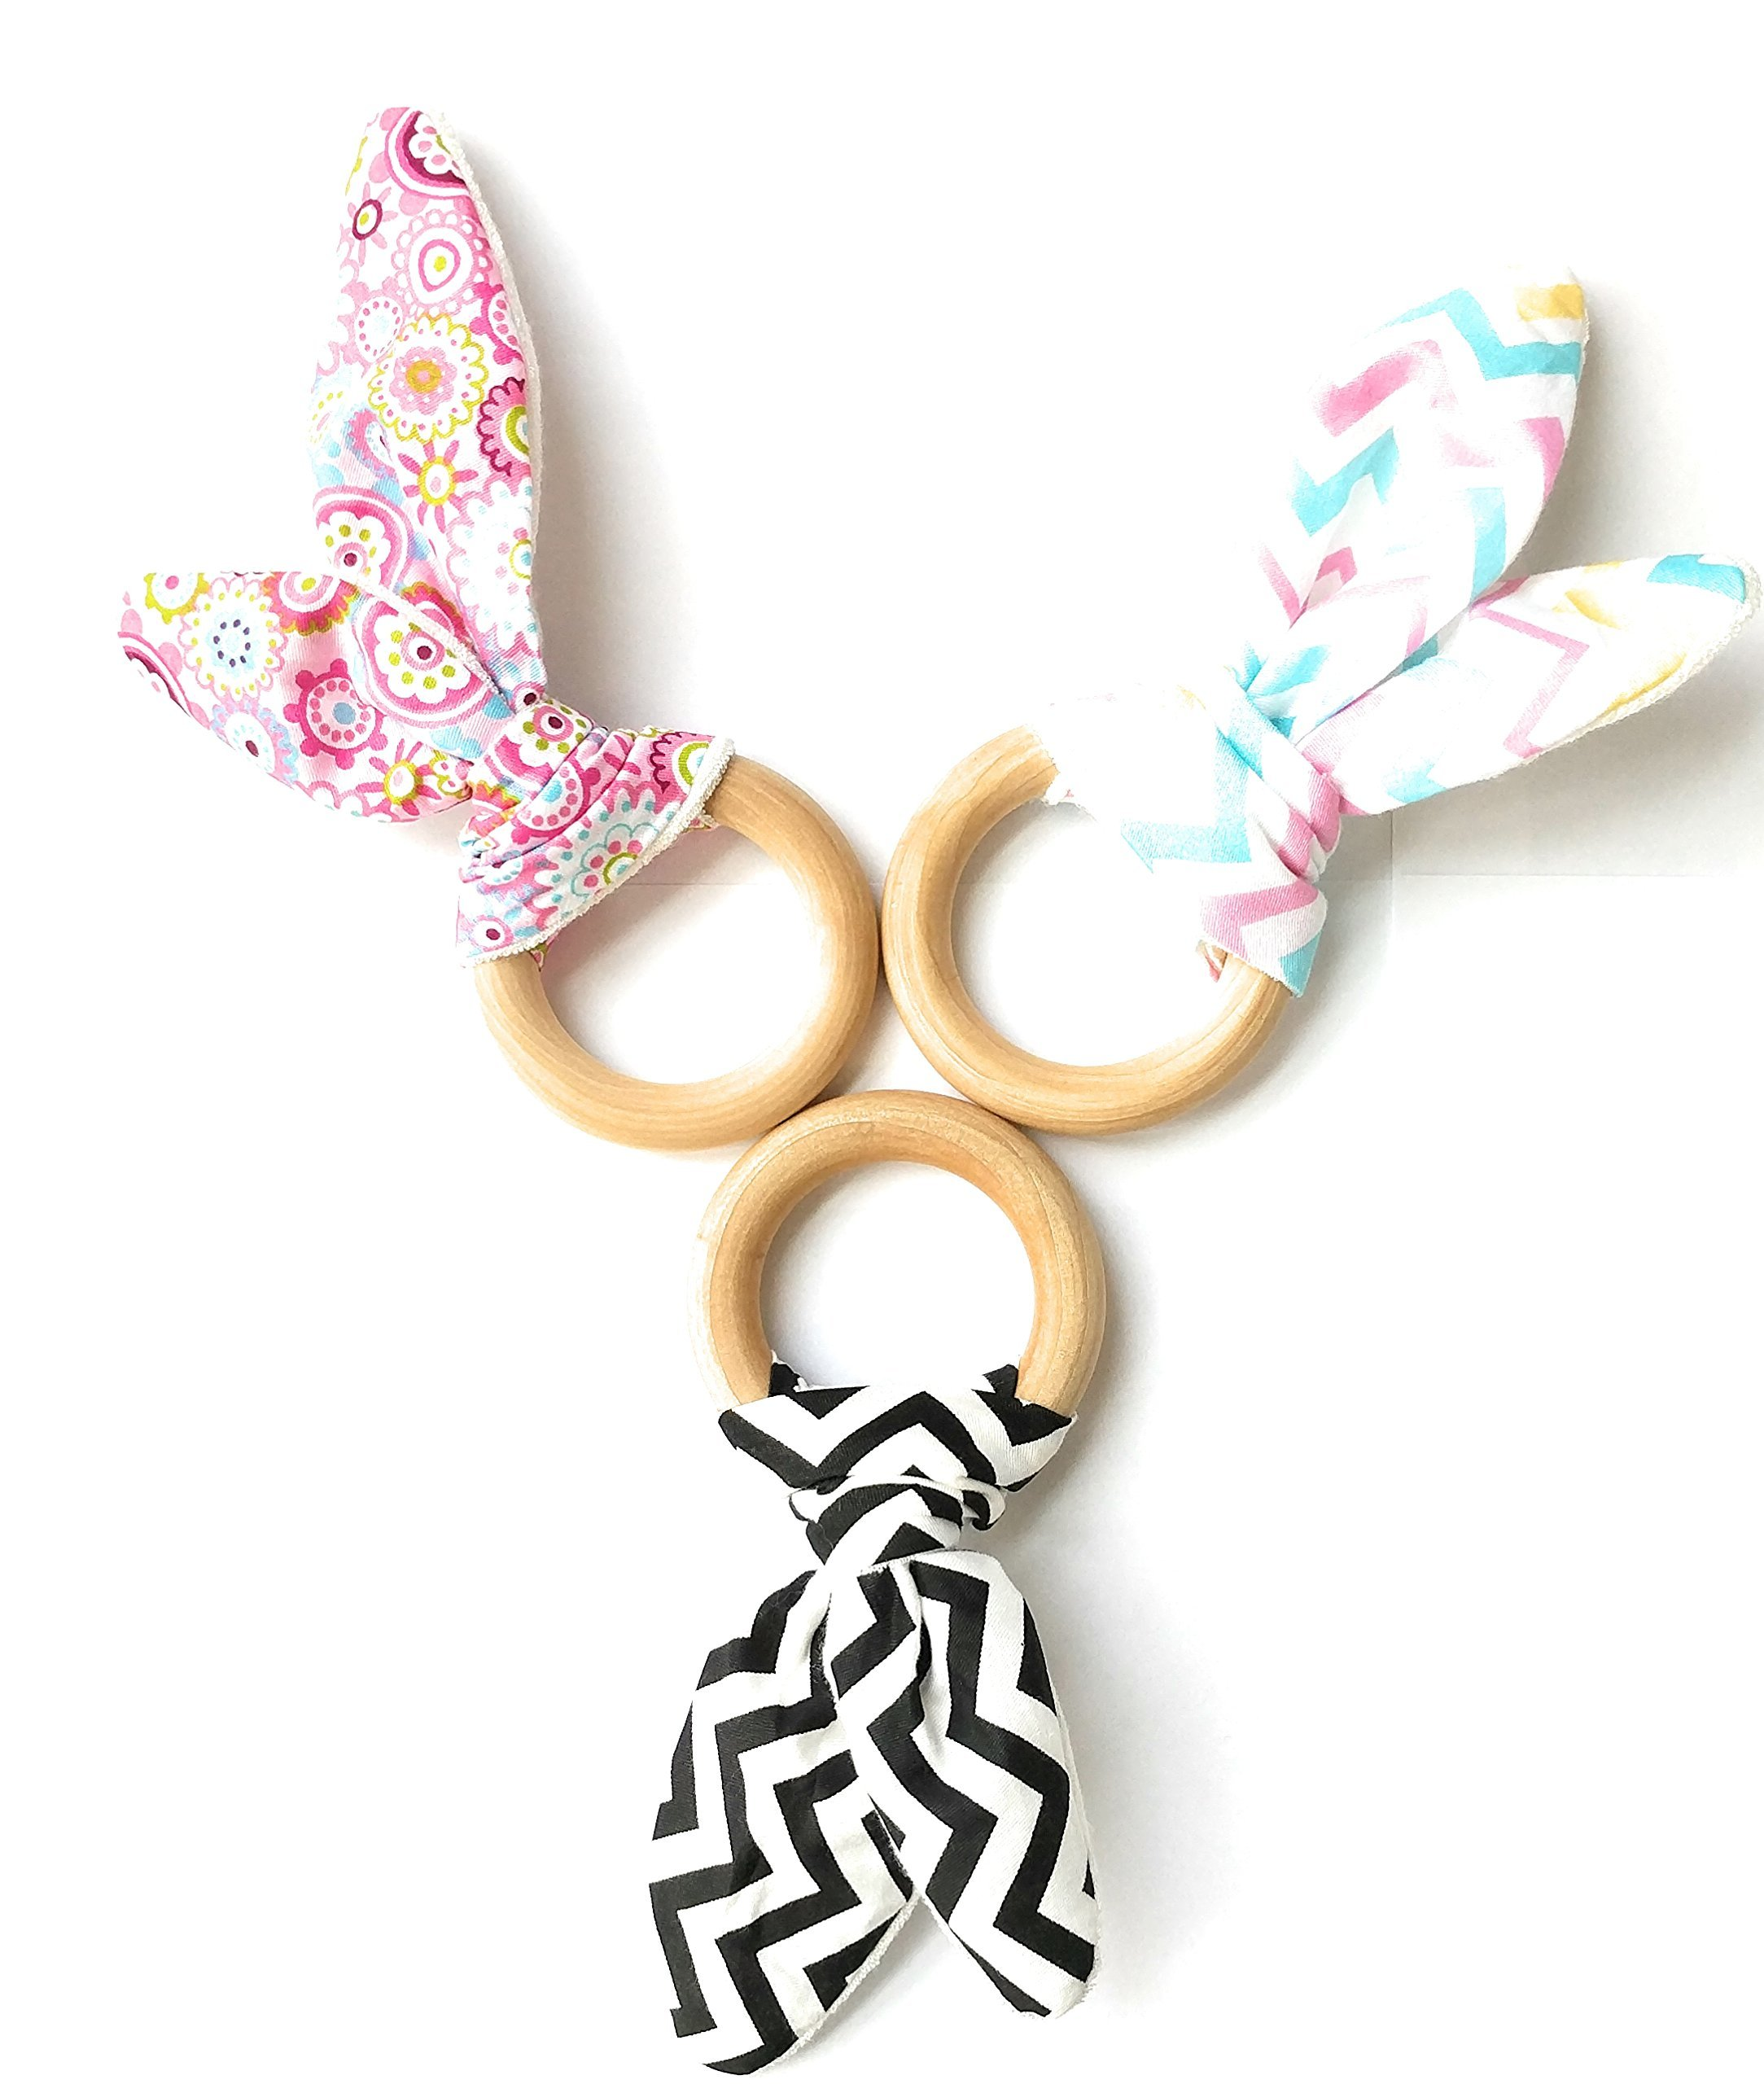 ZuzaMilo Organic Wooden Bunny Ears Ring Teether and Sensory Toy BPA Free, Natural Teething Relief for Babies, Awesome Idea 3 Pack